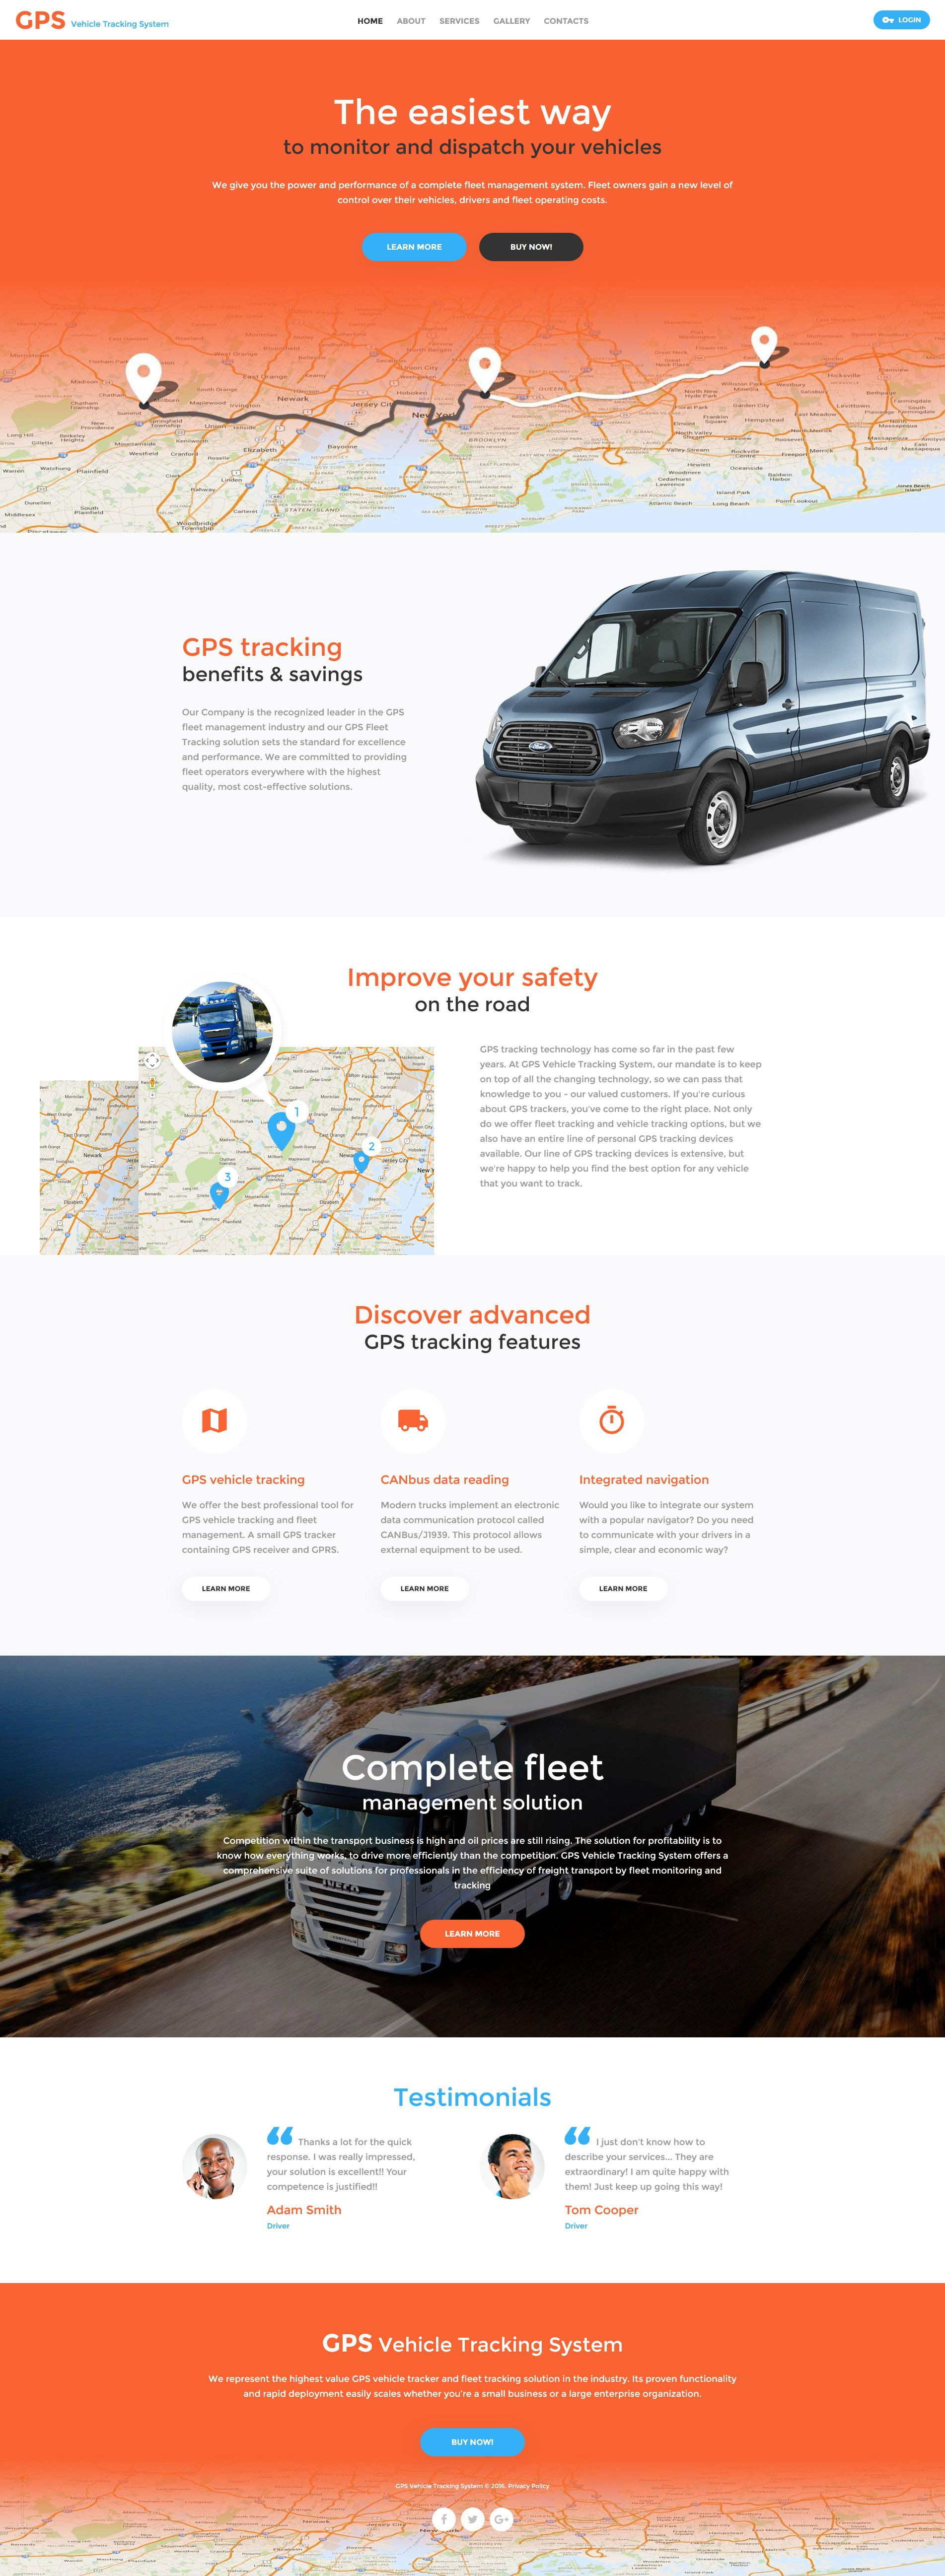 Bring your business website to a new level by upgrading it with this responsive logistics website template for transportation companies